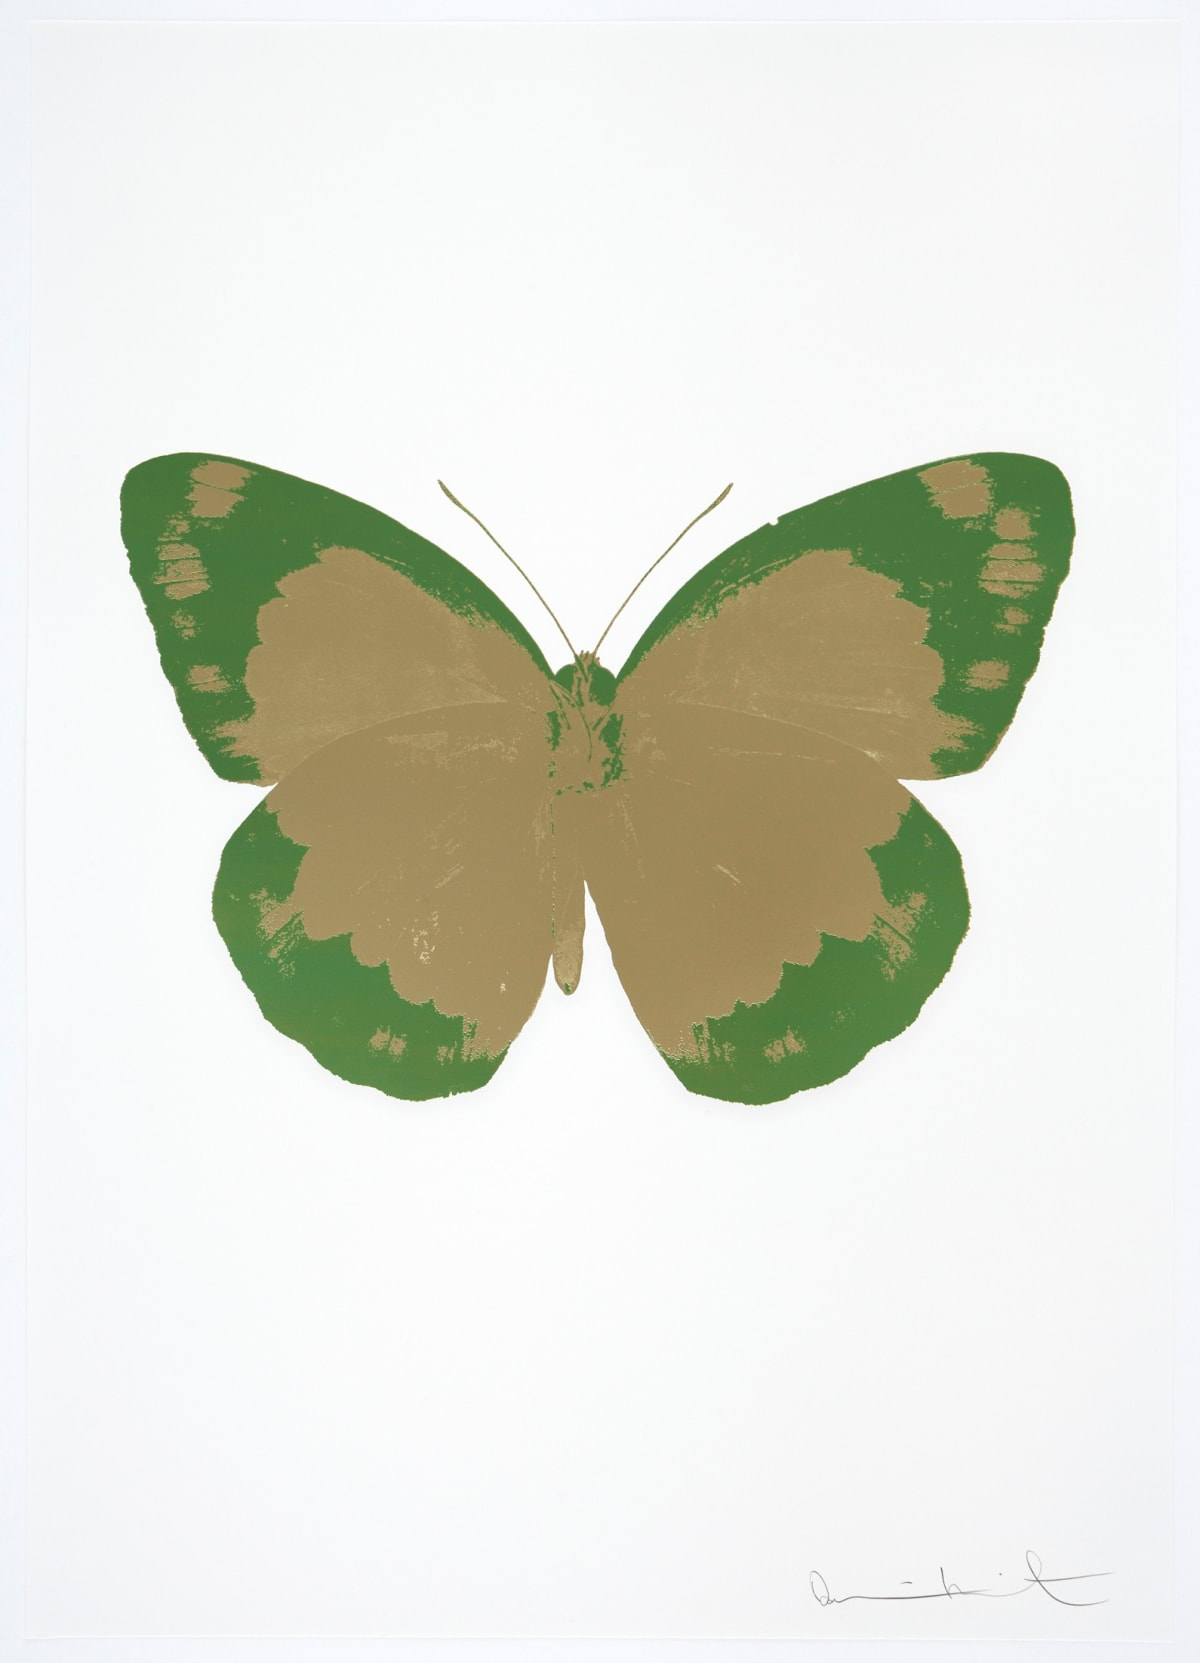 Damien Hirst The Souls II - Cool Gold/Leaf Green/Blind Impression, 2010 2 colour foil block on 300gsm Arches 88 archival paper. Signed and numbered. Published by Paul Stolper and Other Criteria. OC7897 / 658-80 72 x 51cm Edition of 15